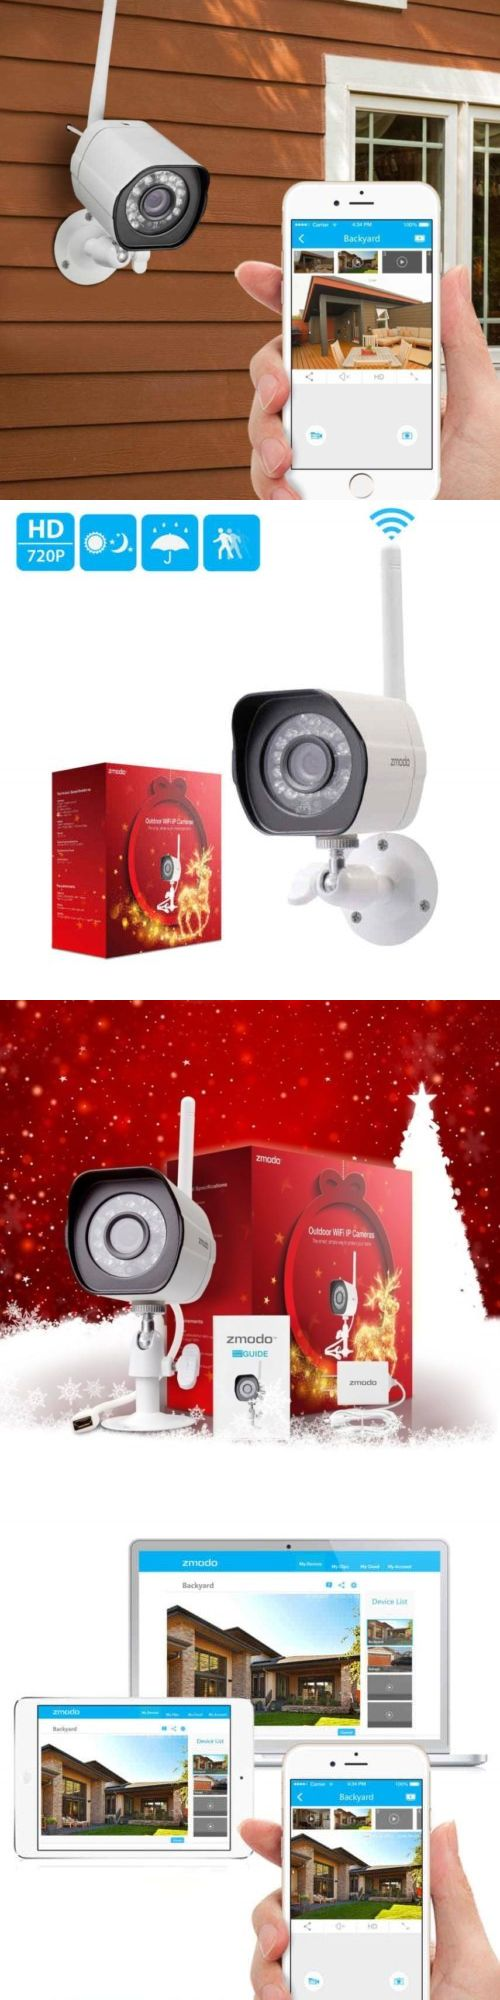 security cameras zmodo 720p hd outdoor home wireless security